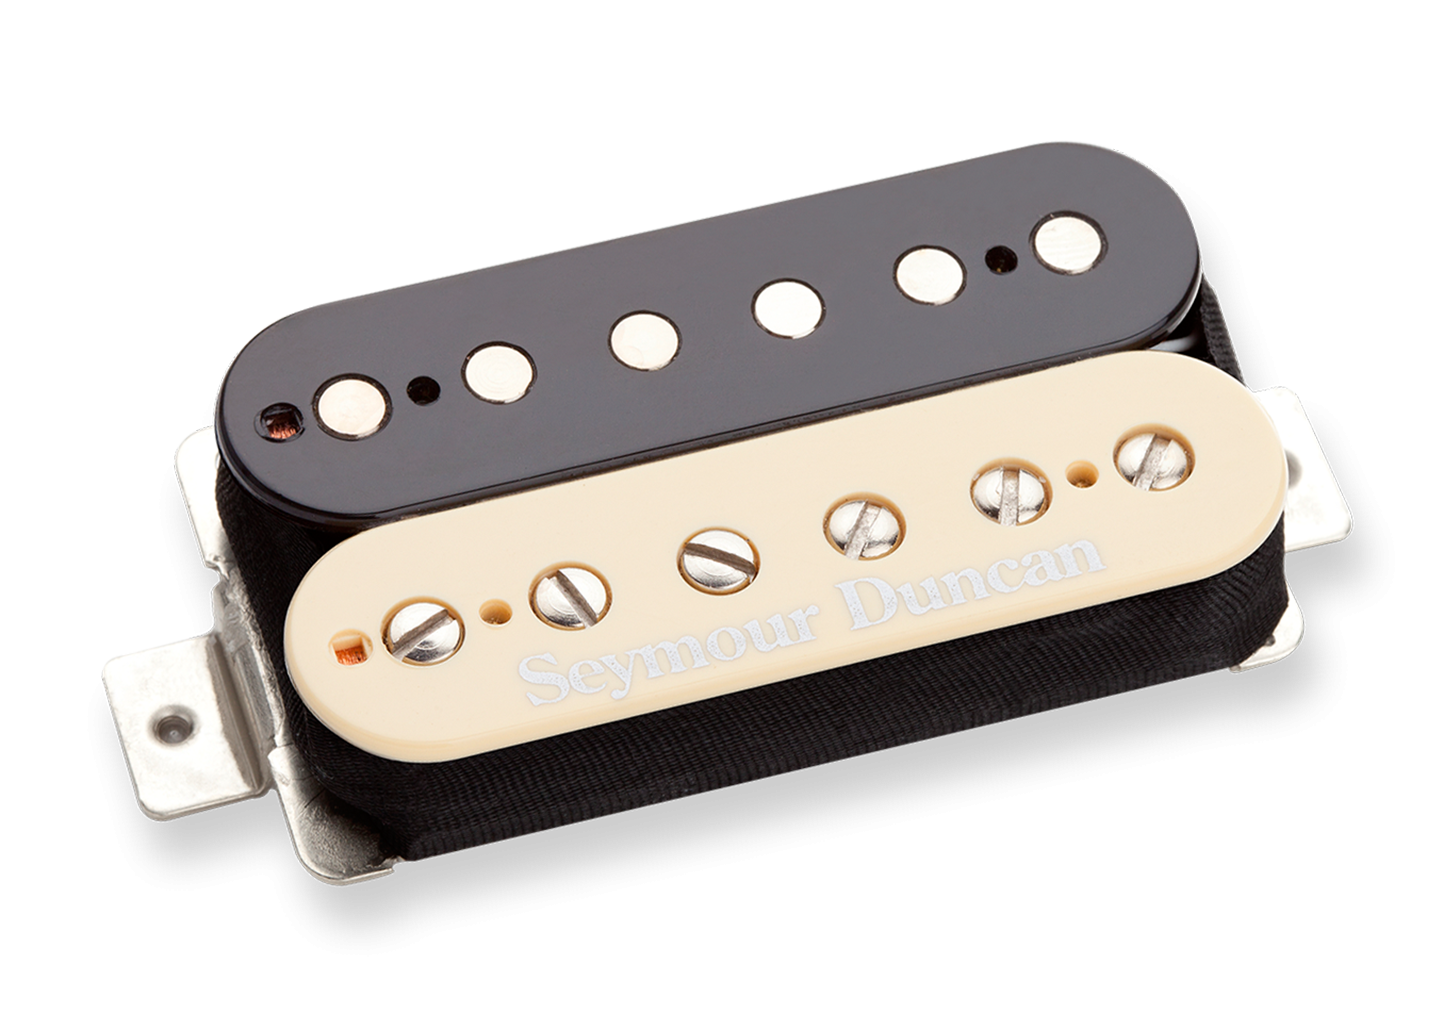 Seymour Duncan Pearly Gates Humbucker - SH-PG1B Bridge Zebra